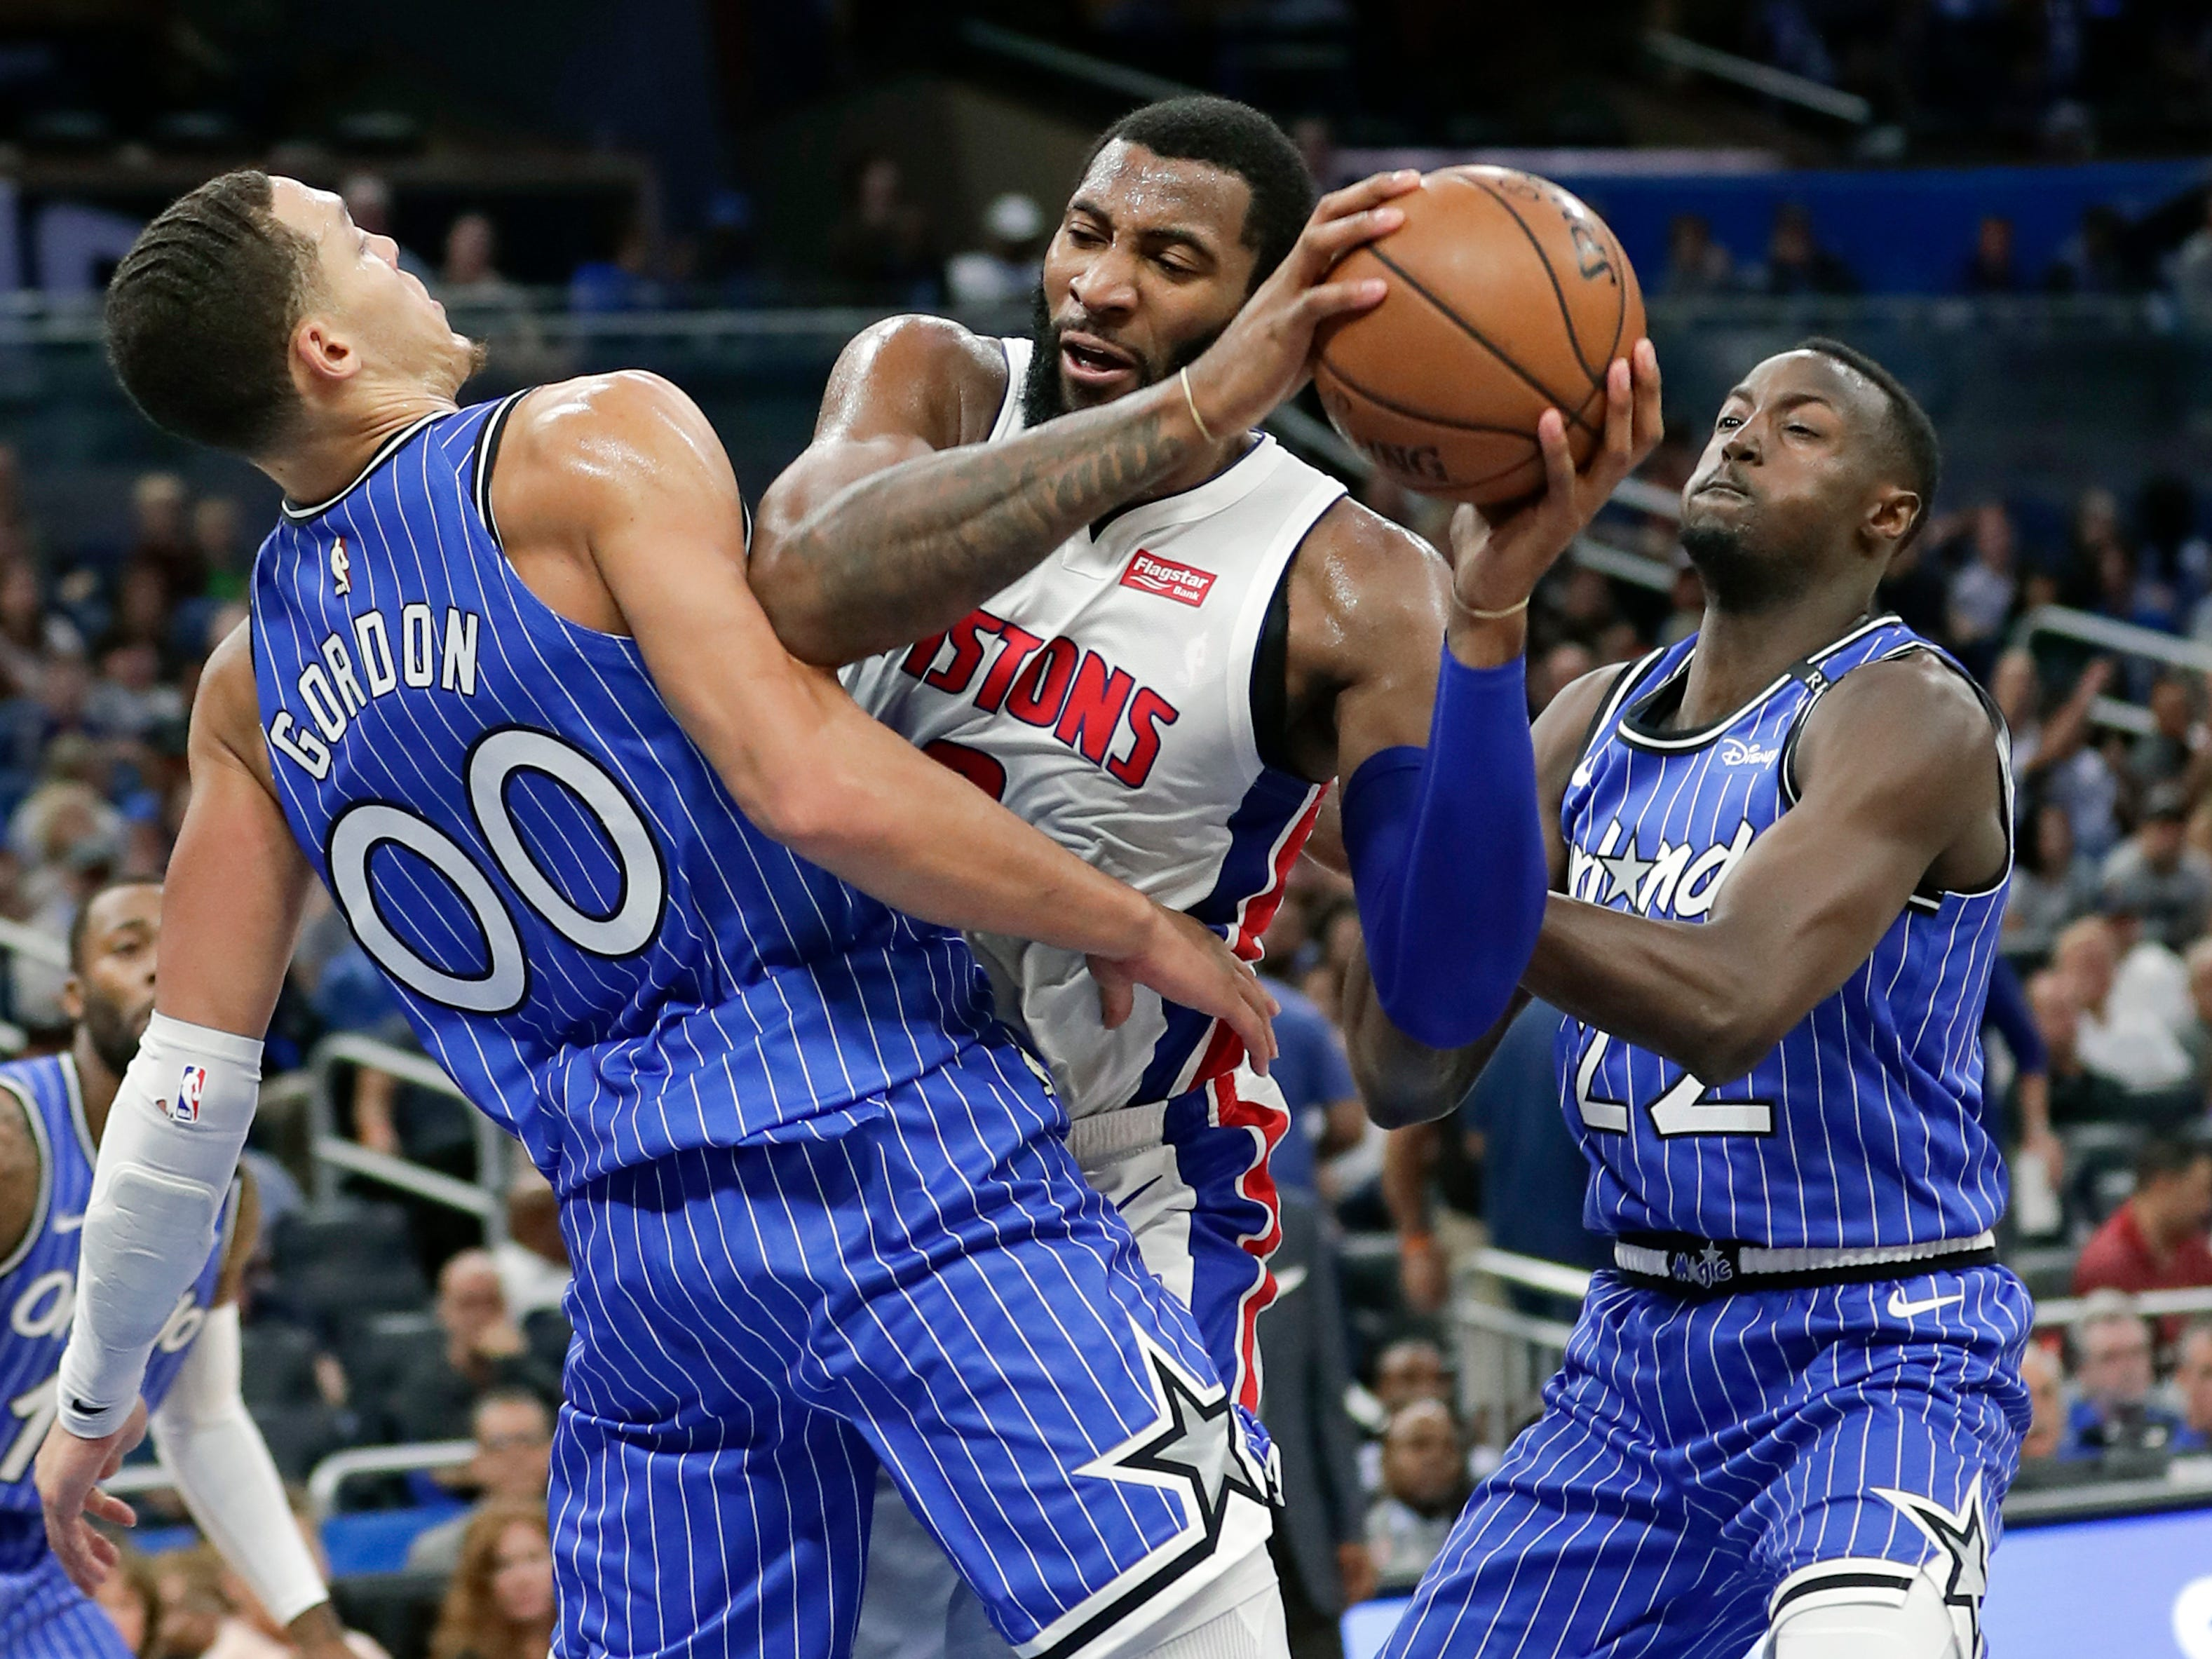 Detroit Pistons' Andre Drummond, center, tries to get to the basket between Orlando Magic's Aaron Gordon (00) and Jerian Grant, right, during the first half of an NBA basketball game, Wednesday, Nov. 7, 2018, in Orlando, Fla.